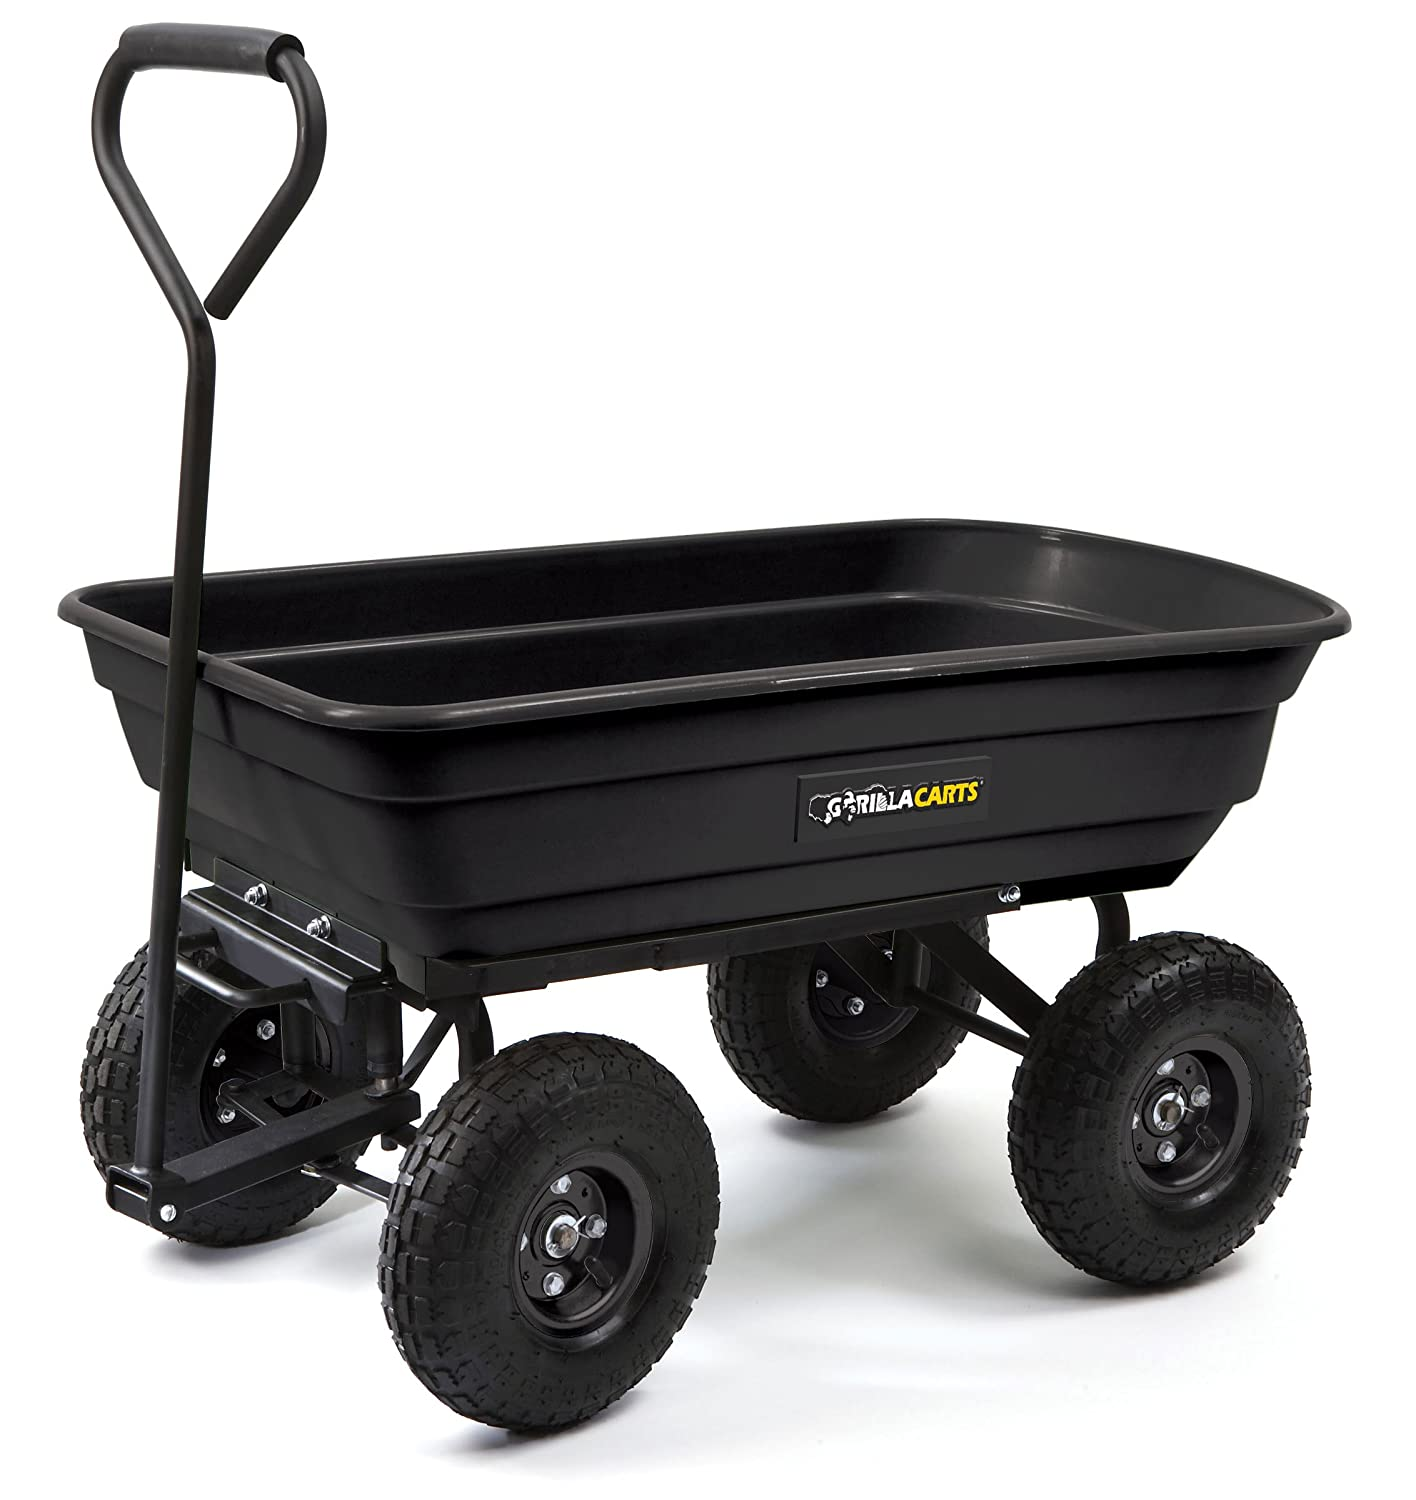 Gorilla Carts GOR200B Poly Garden Dump Cart with Steel Frame